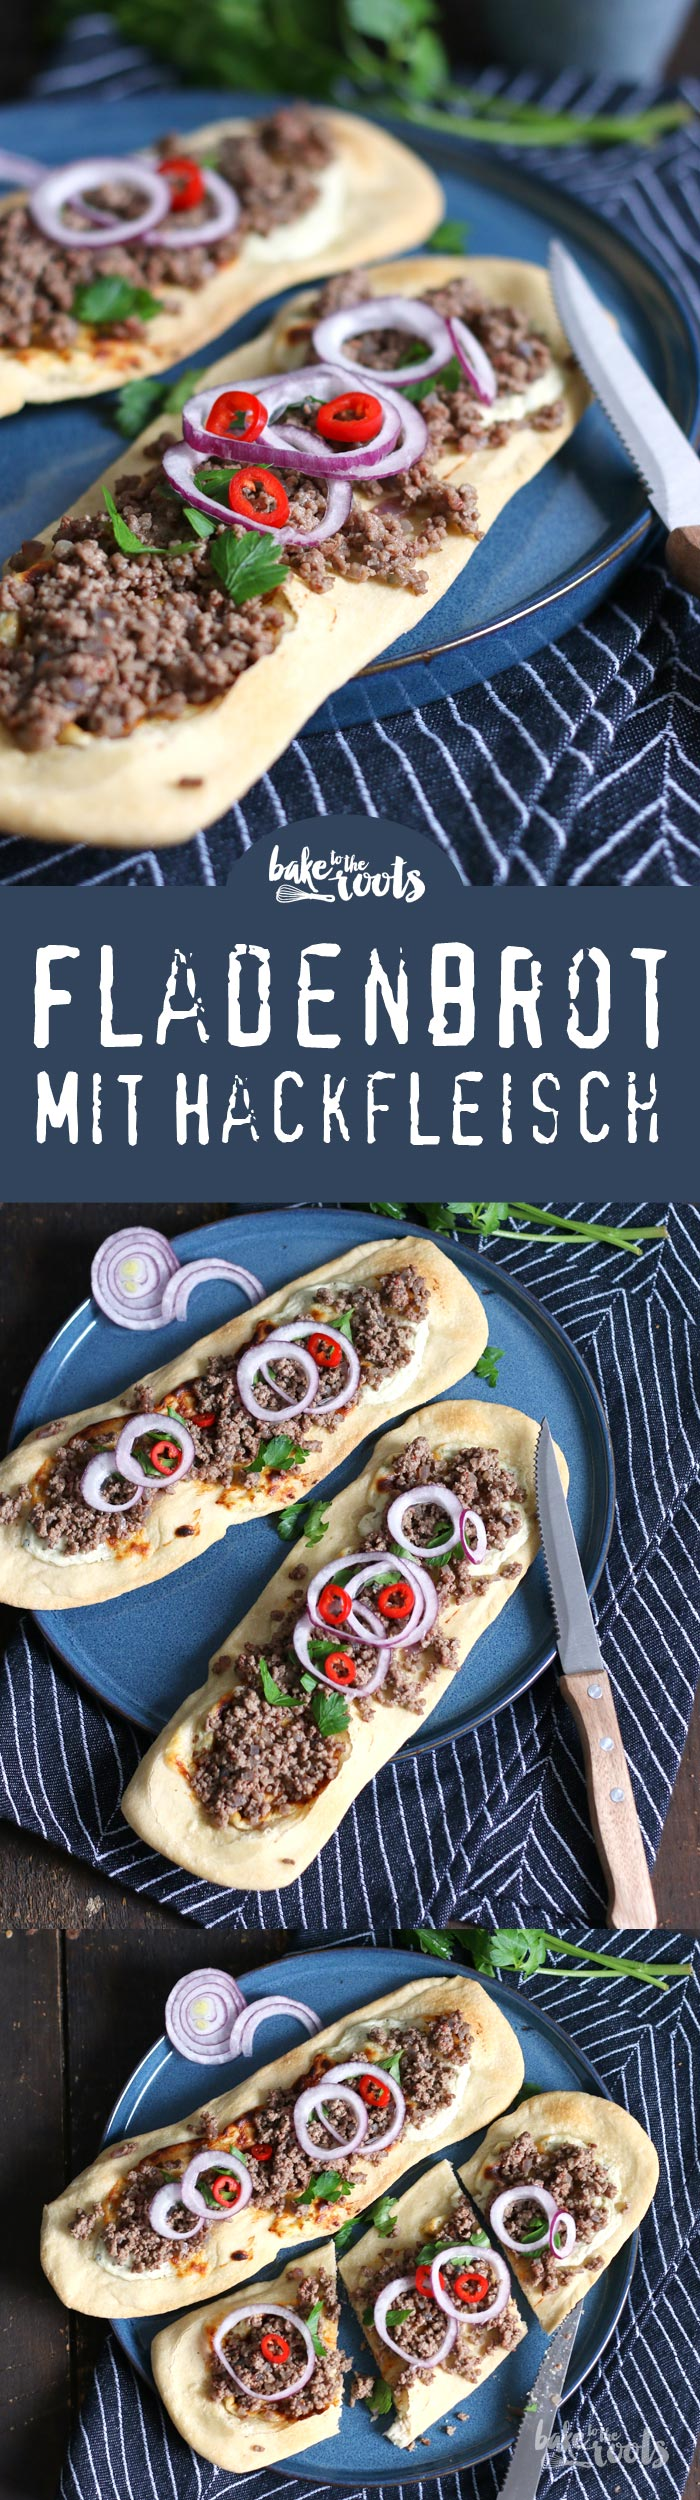 Leckere Fladenbrote mit Hackfleisch | Bake to the roots